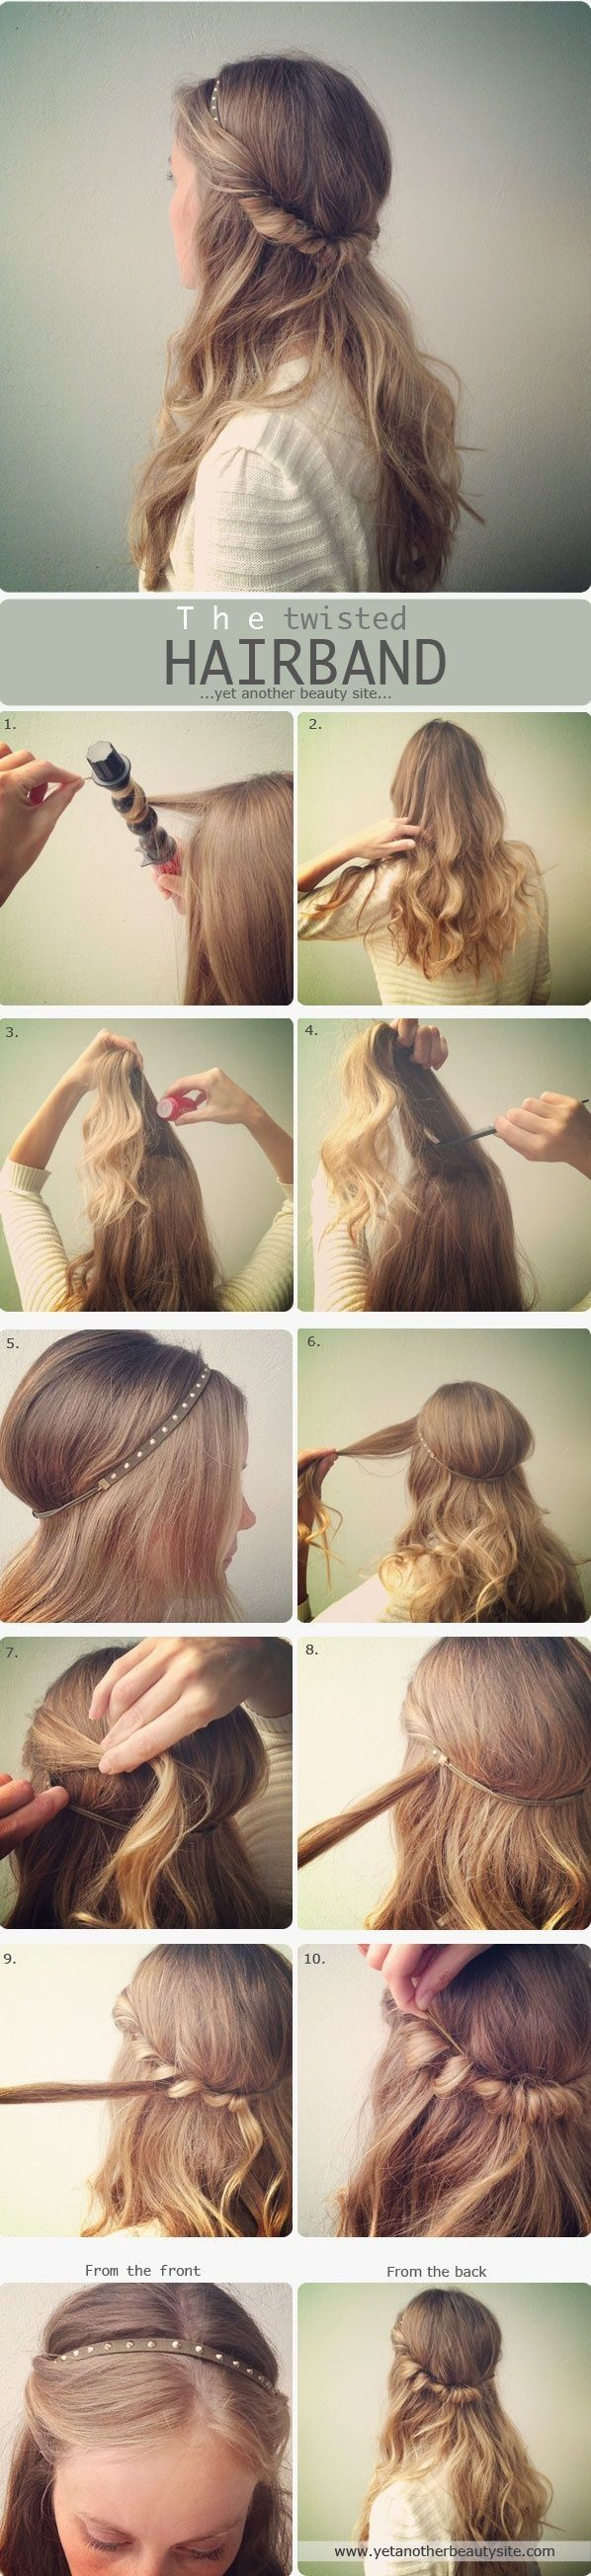 Headband Hairstyle. Never thought to do this and it's so simple.